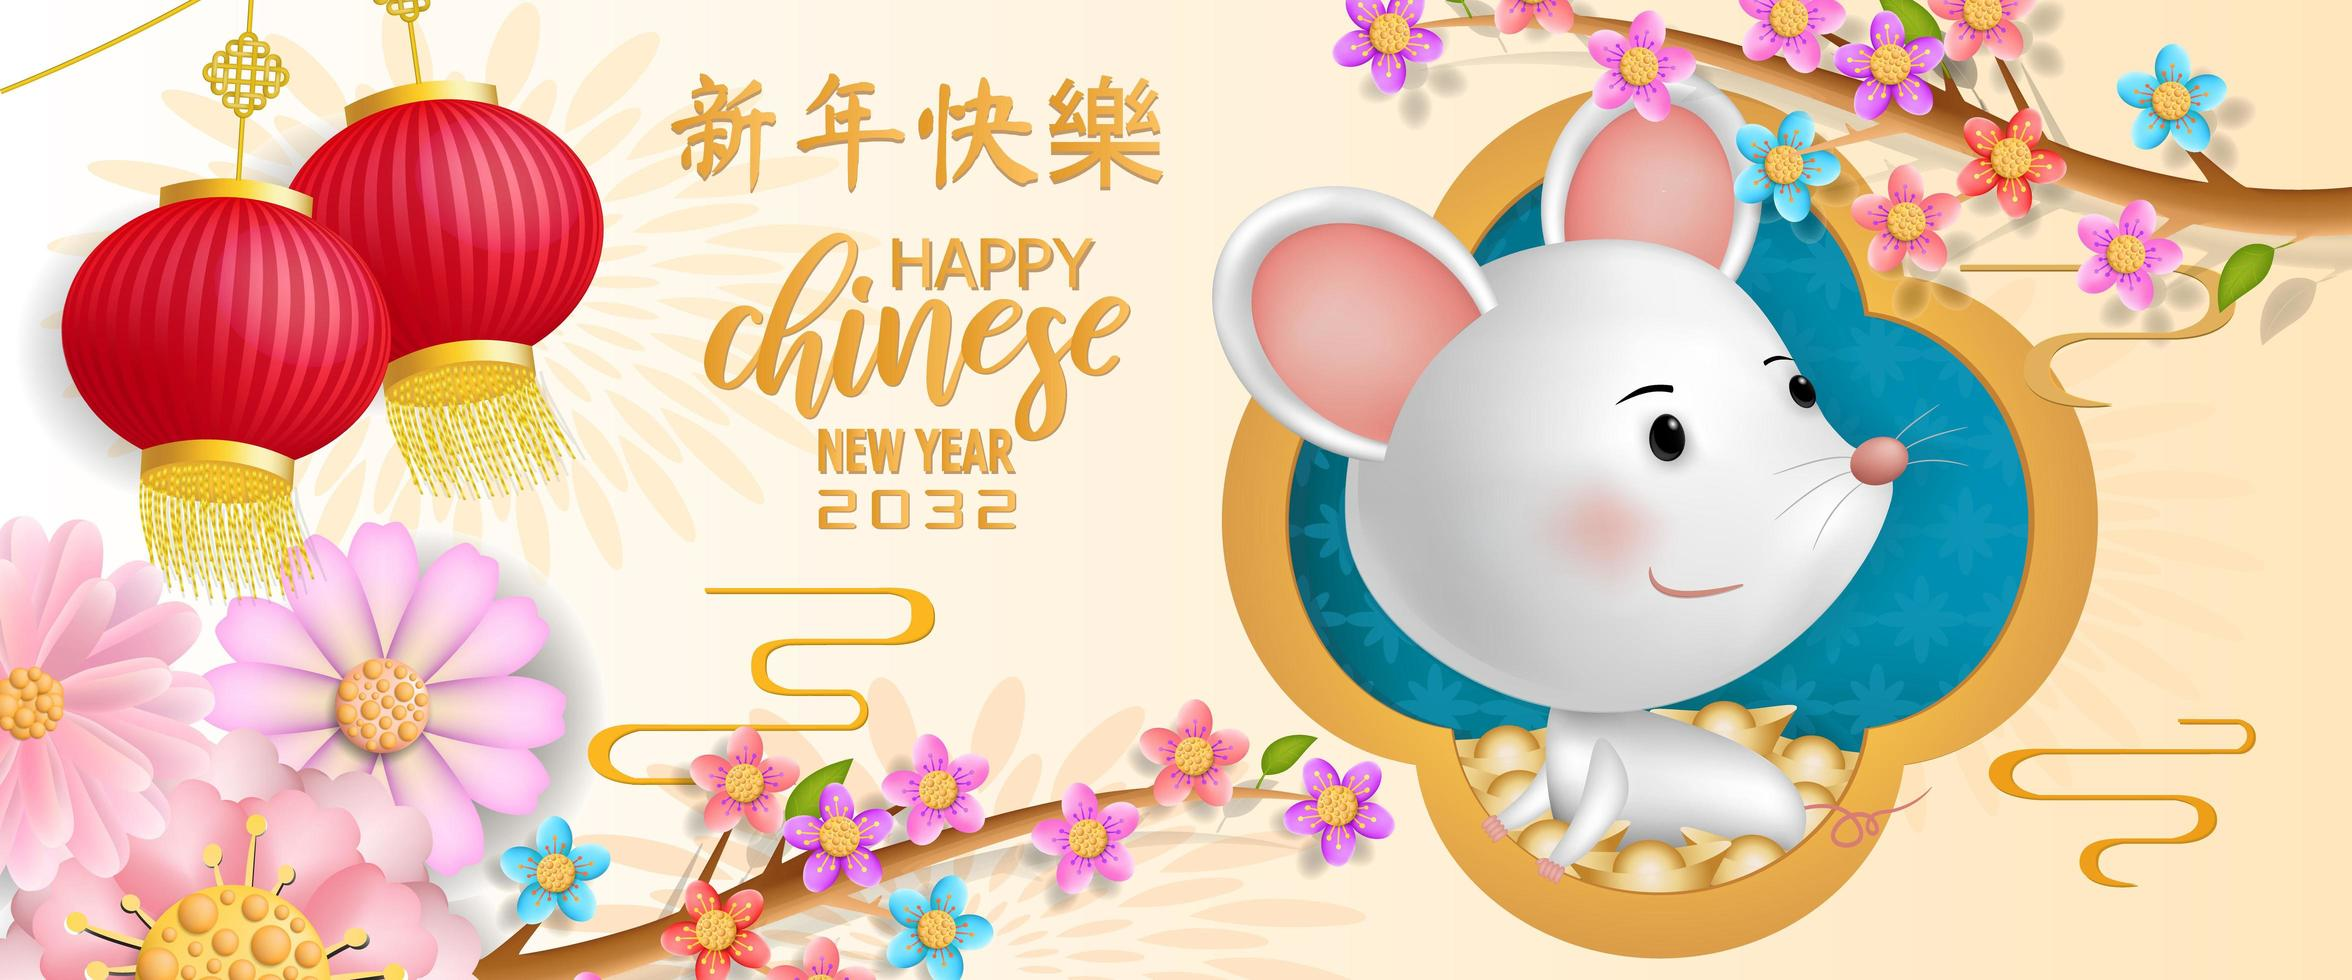 Happy new year 2032 Chinese new year greetings. Year of the Rat fortune. Chinese translation is Wish you a happy Chinese new year. vector